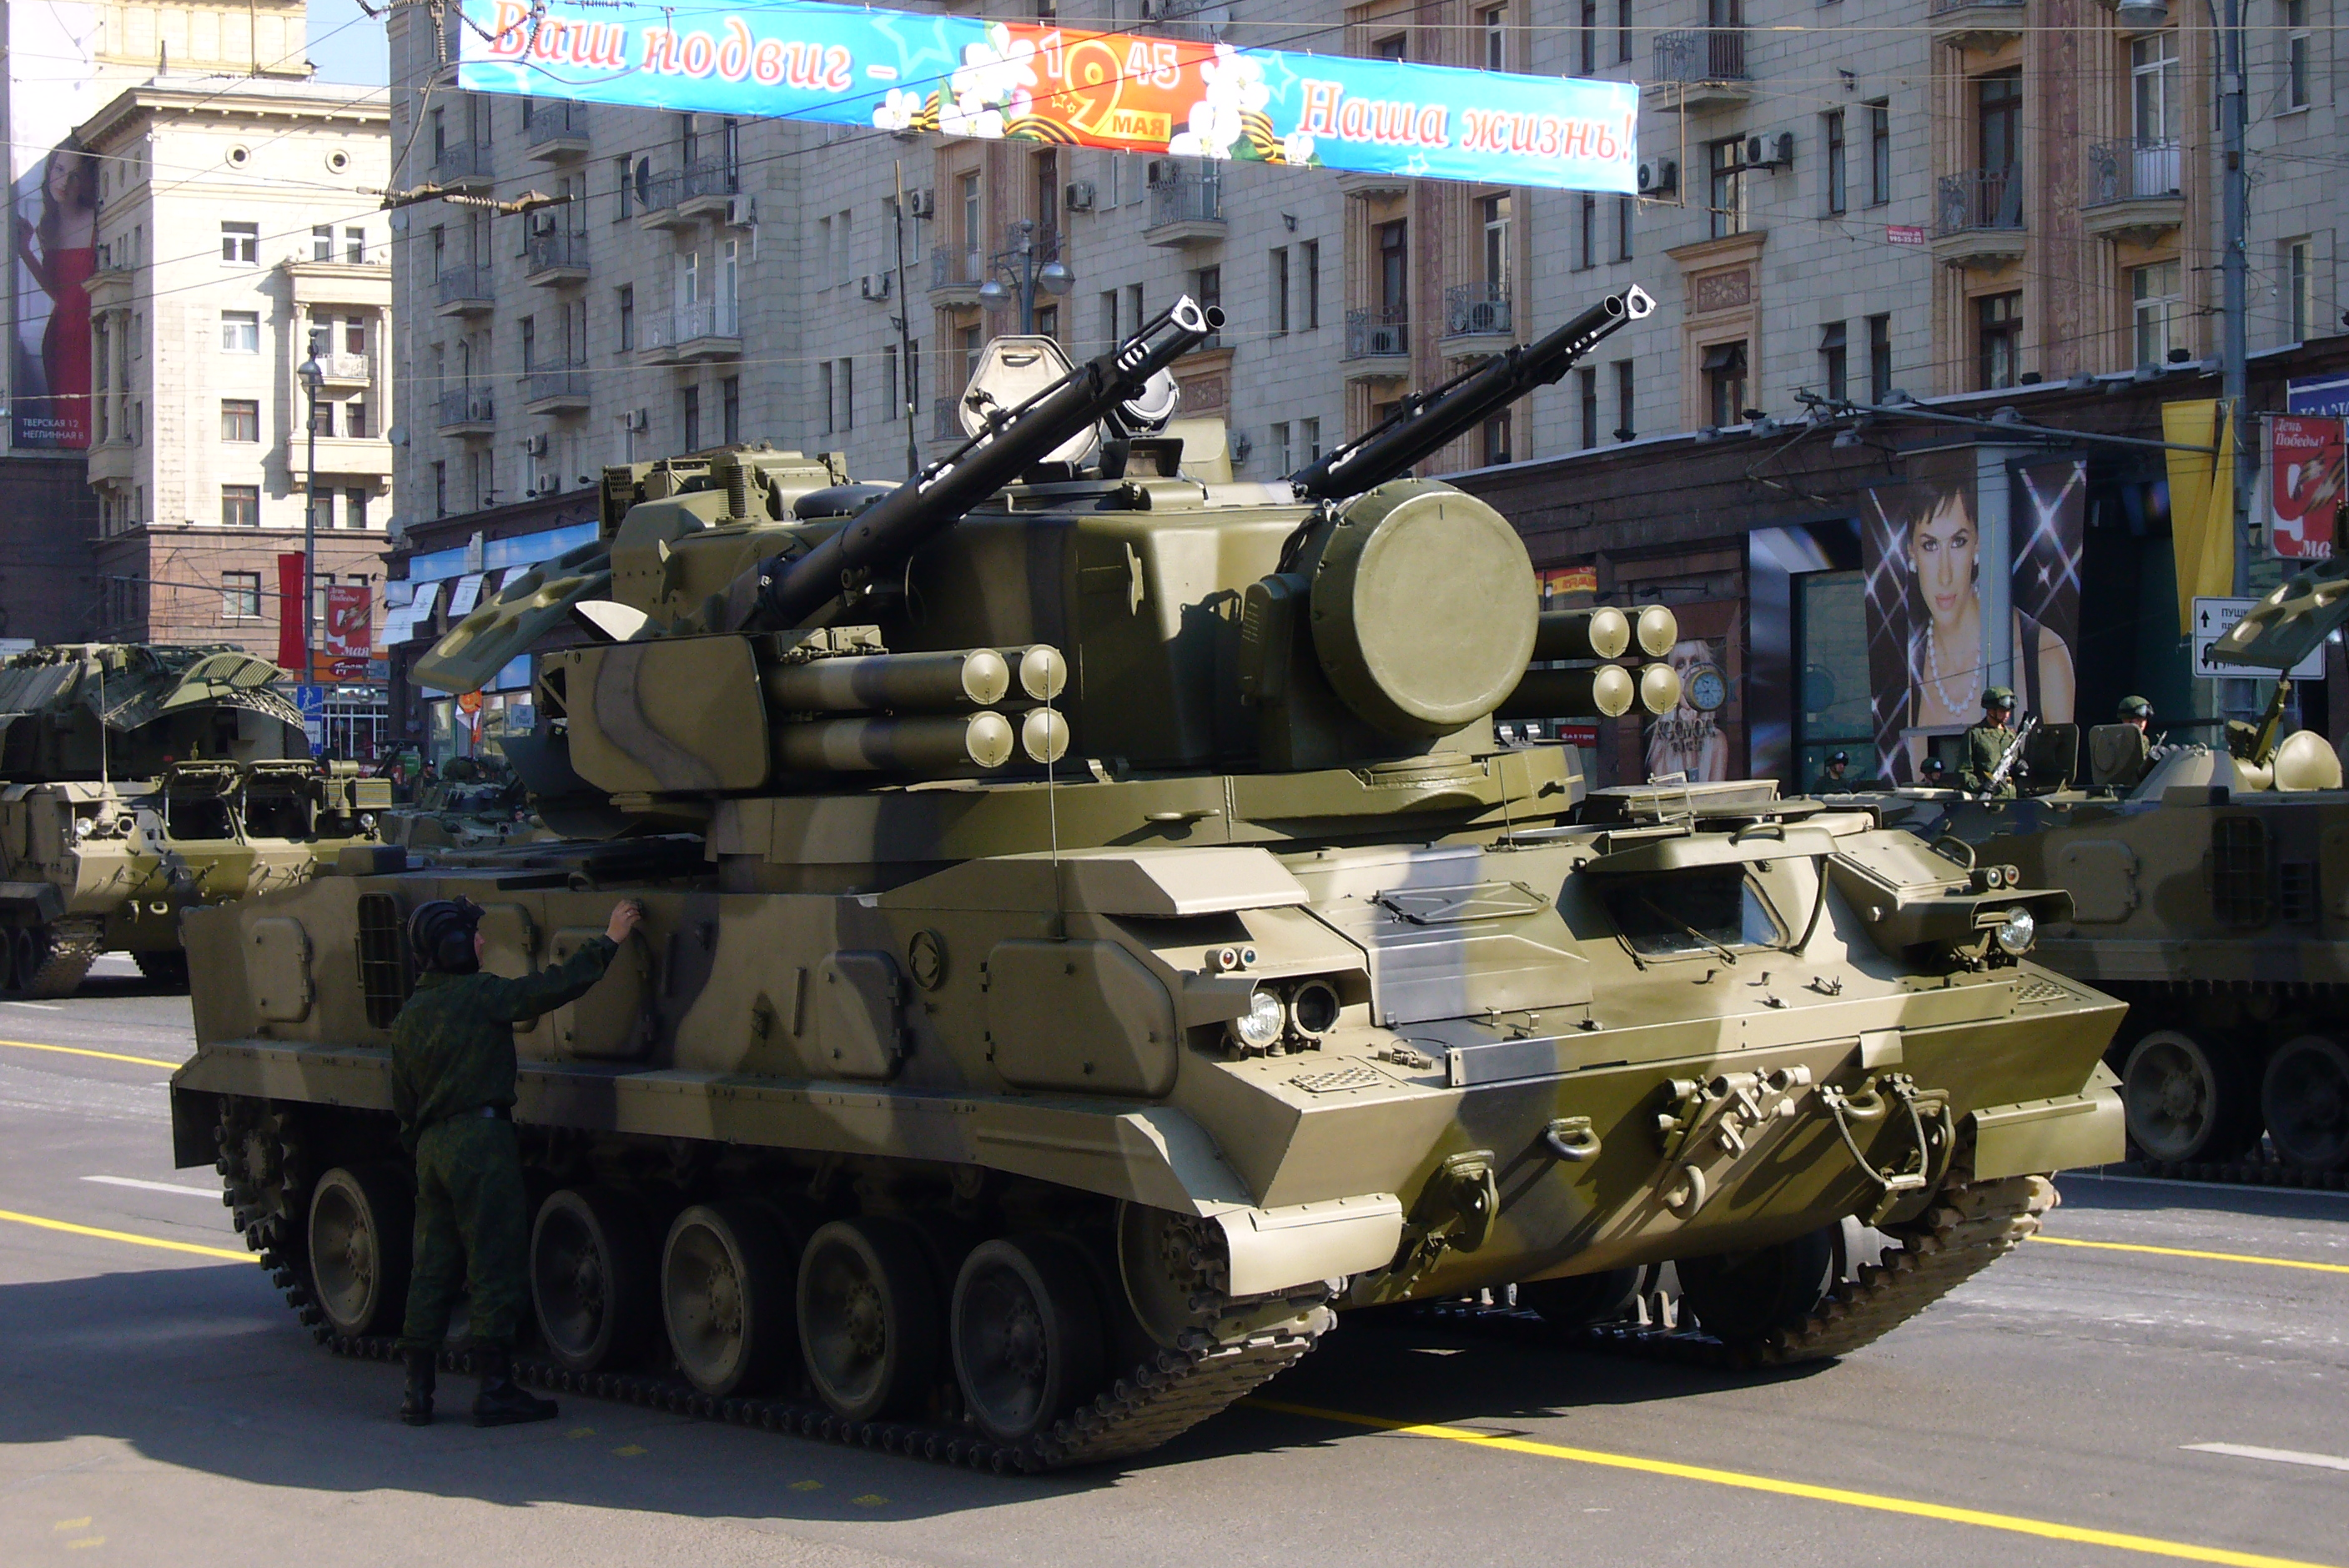 This Russian Tunguska SPAAG is armed with autocannons and anti-air missiles. Clearly visible on each side of the turret are the missile tubes. The circular object on the front of the turret is a radar antennae.